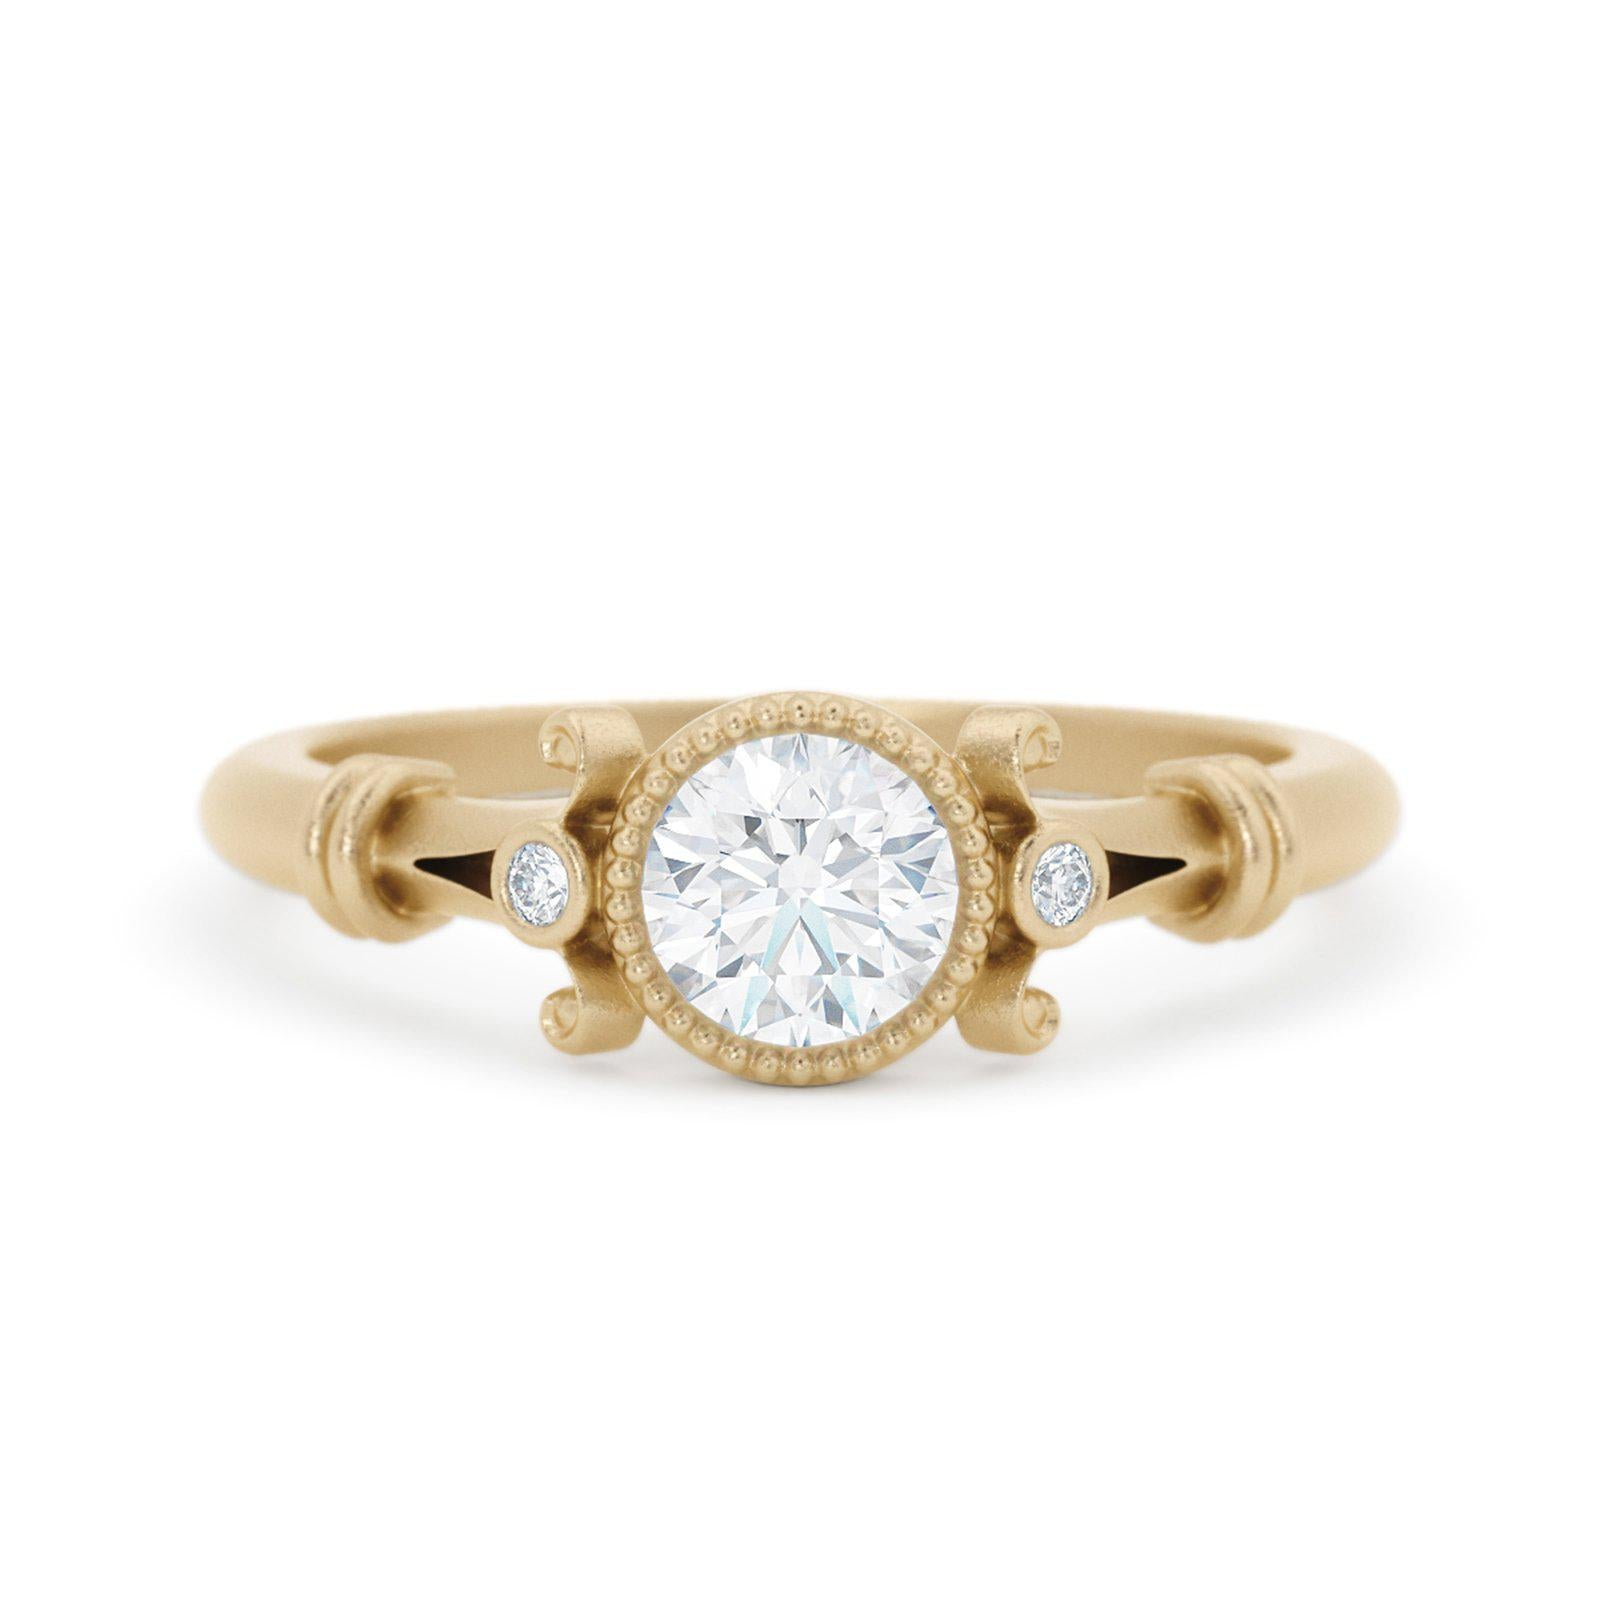 Florence Diamond Ring solitaire vintage style